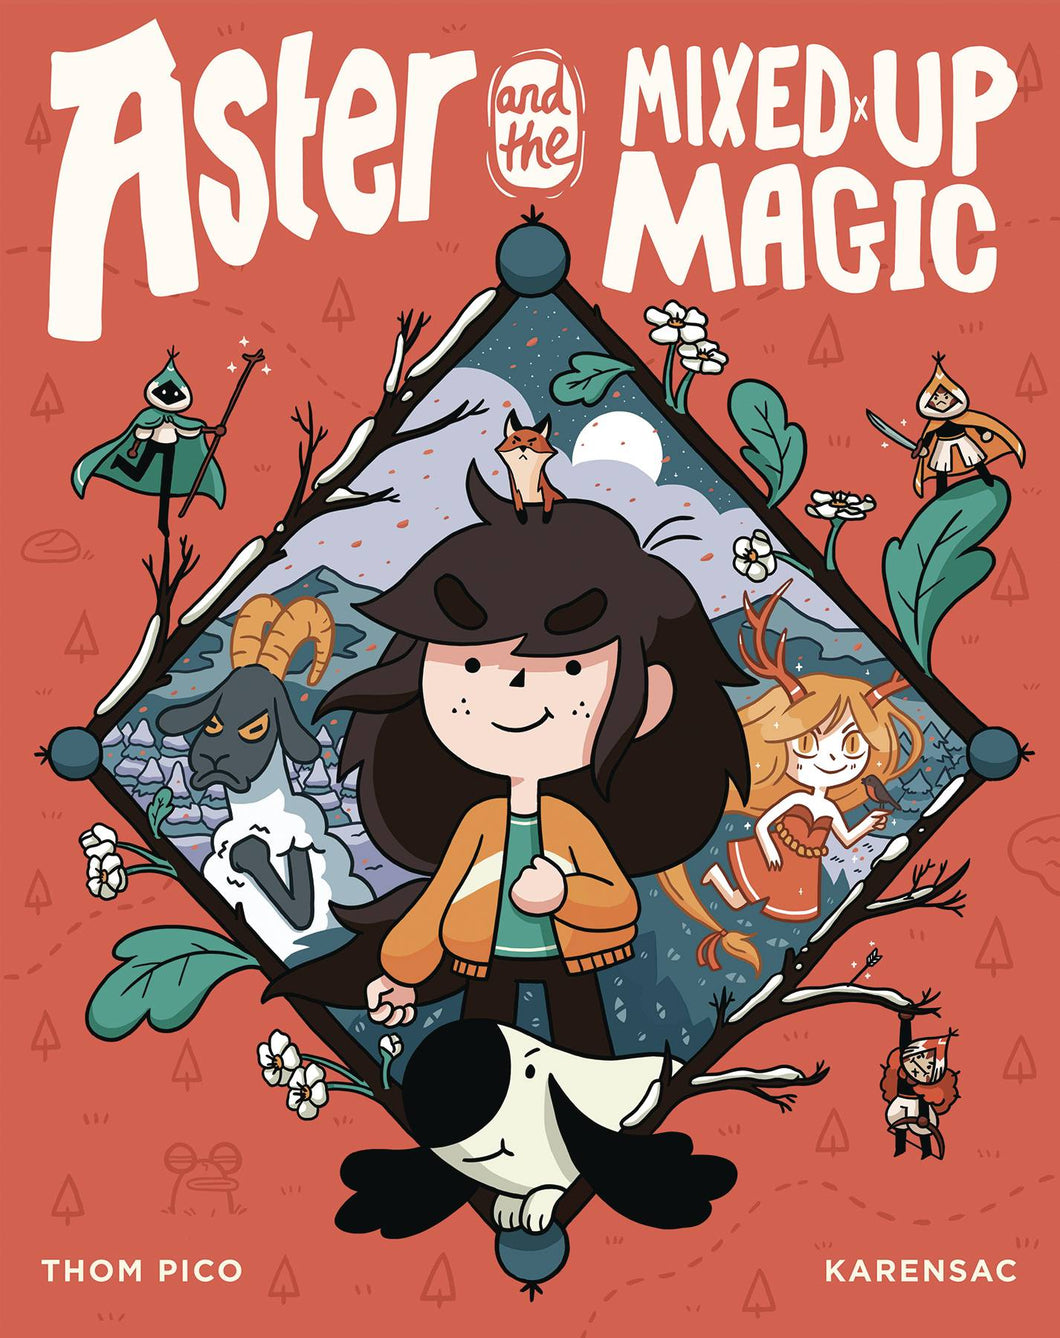 Aster SC GN Vol 02 Mixed Up Magic - Books